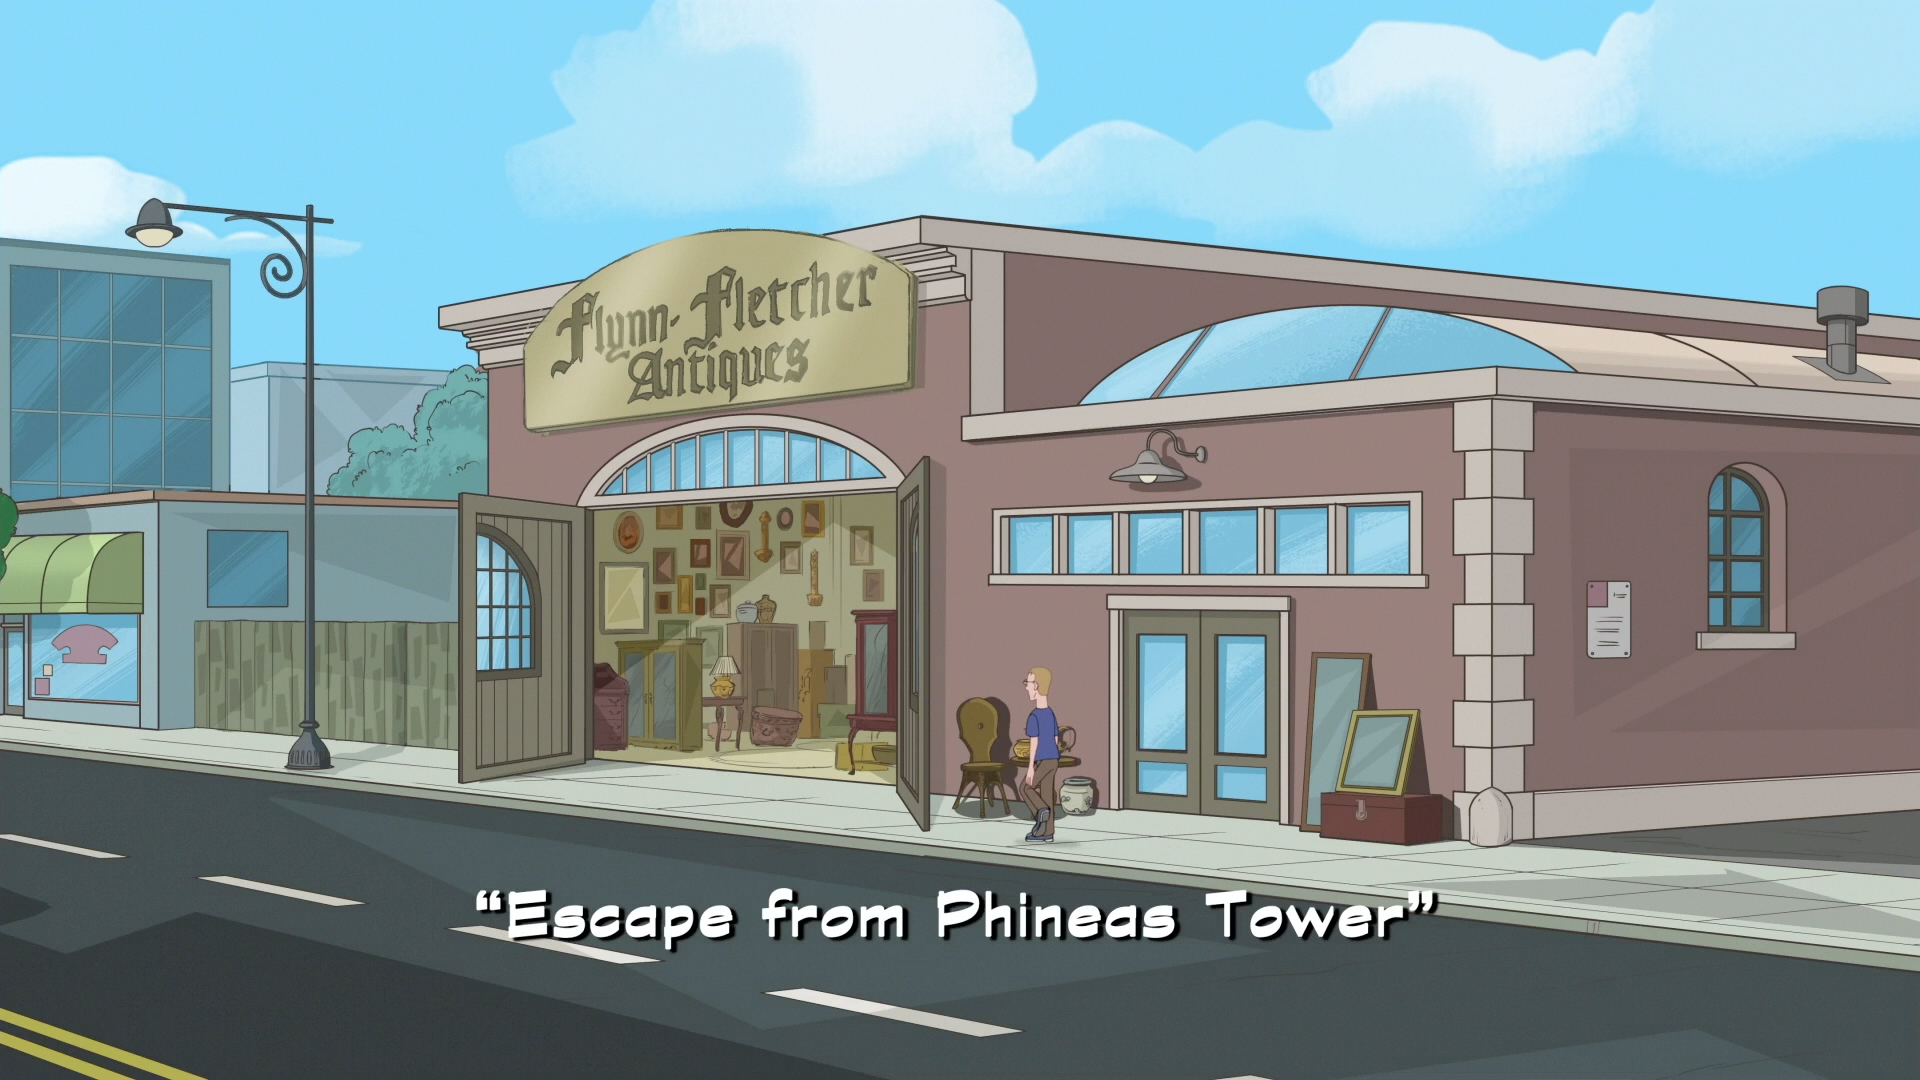 Escape from Phineas Tower